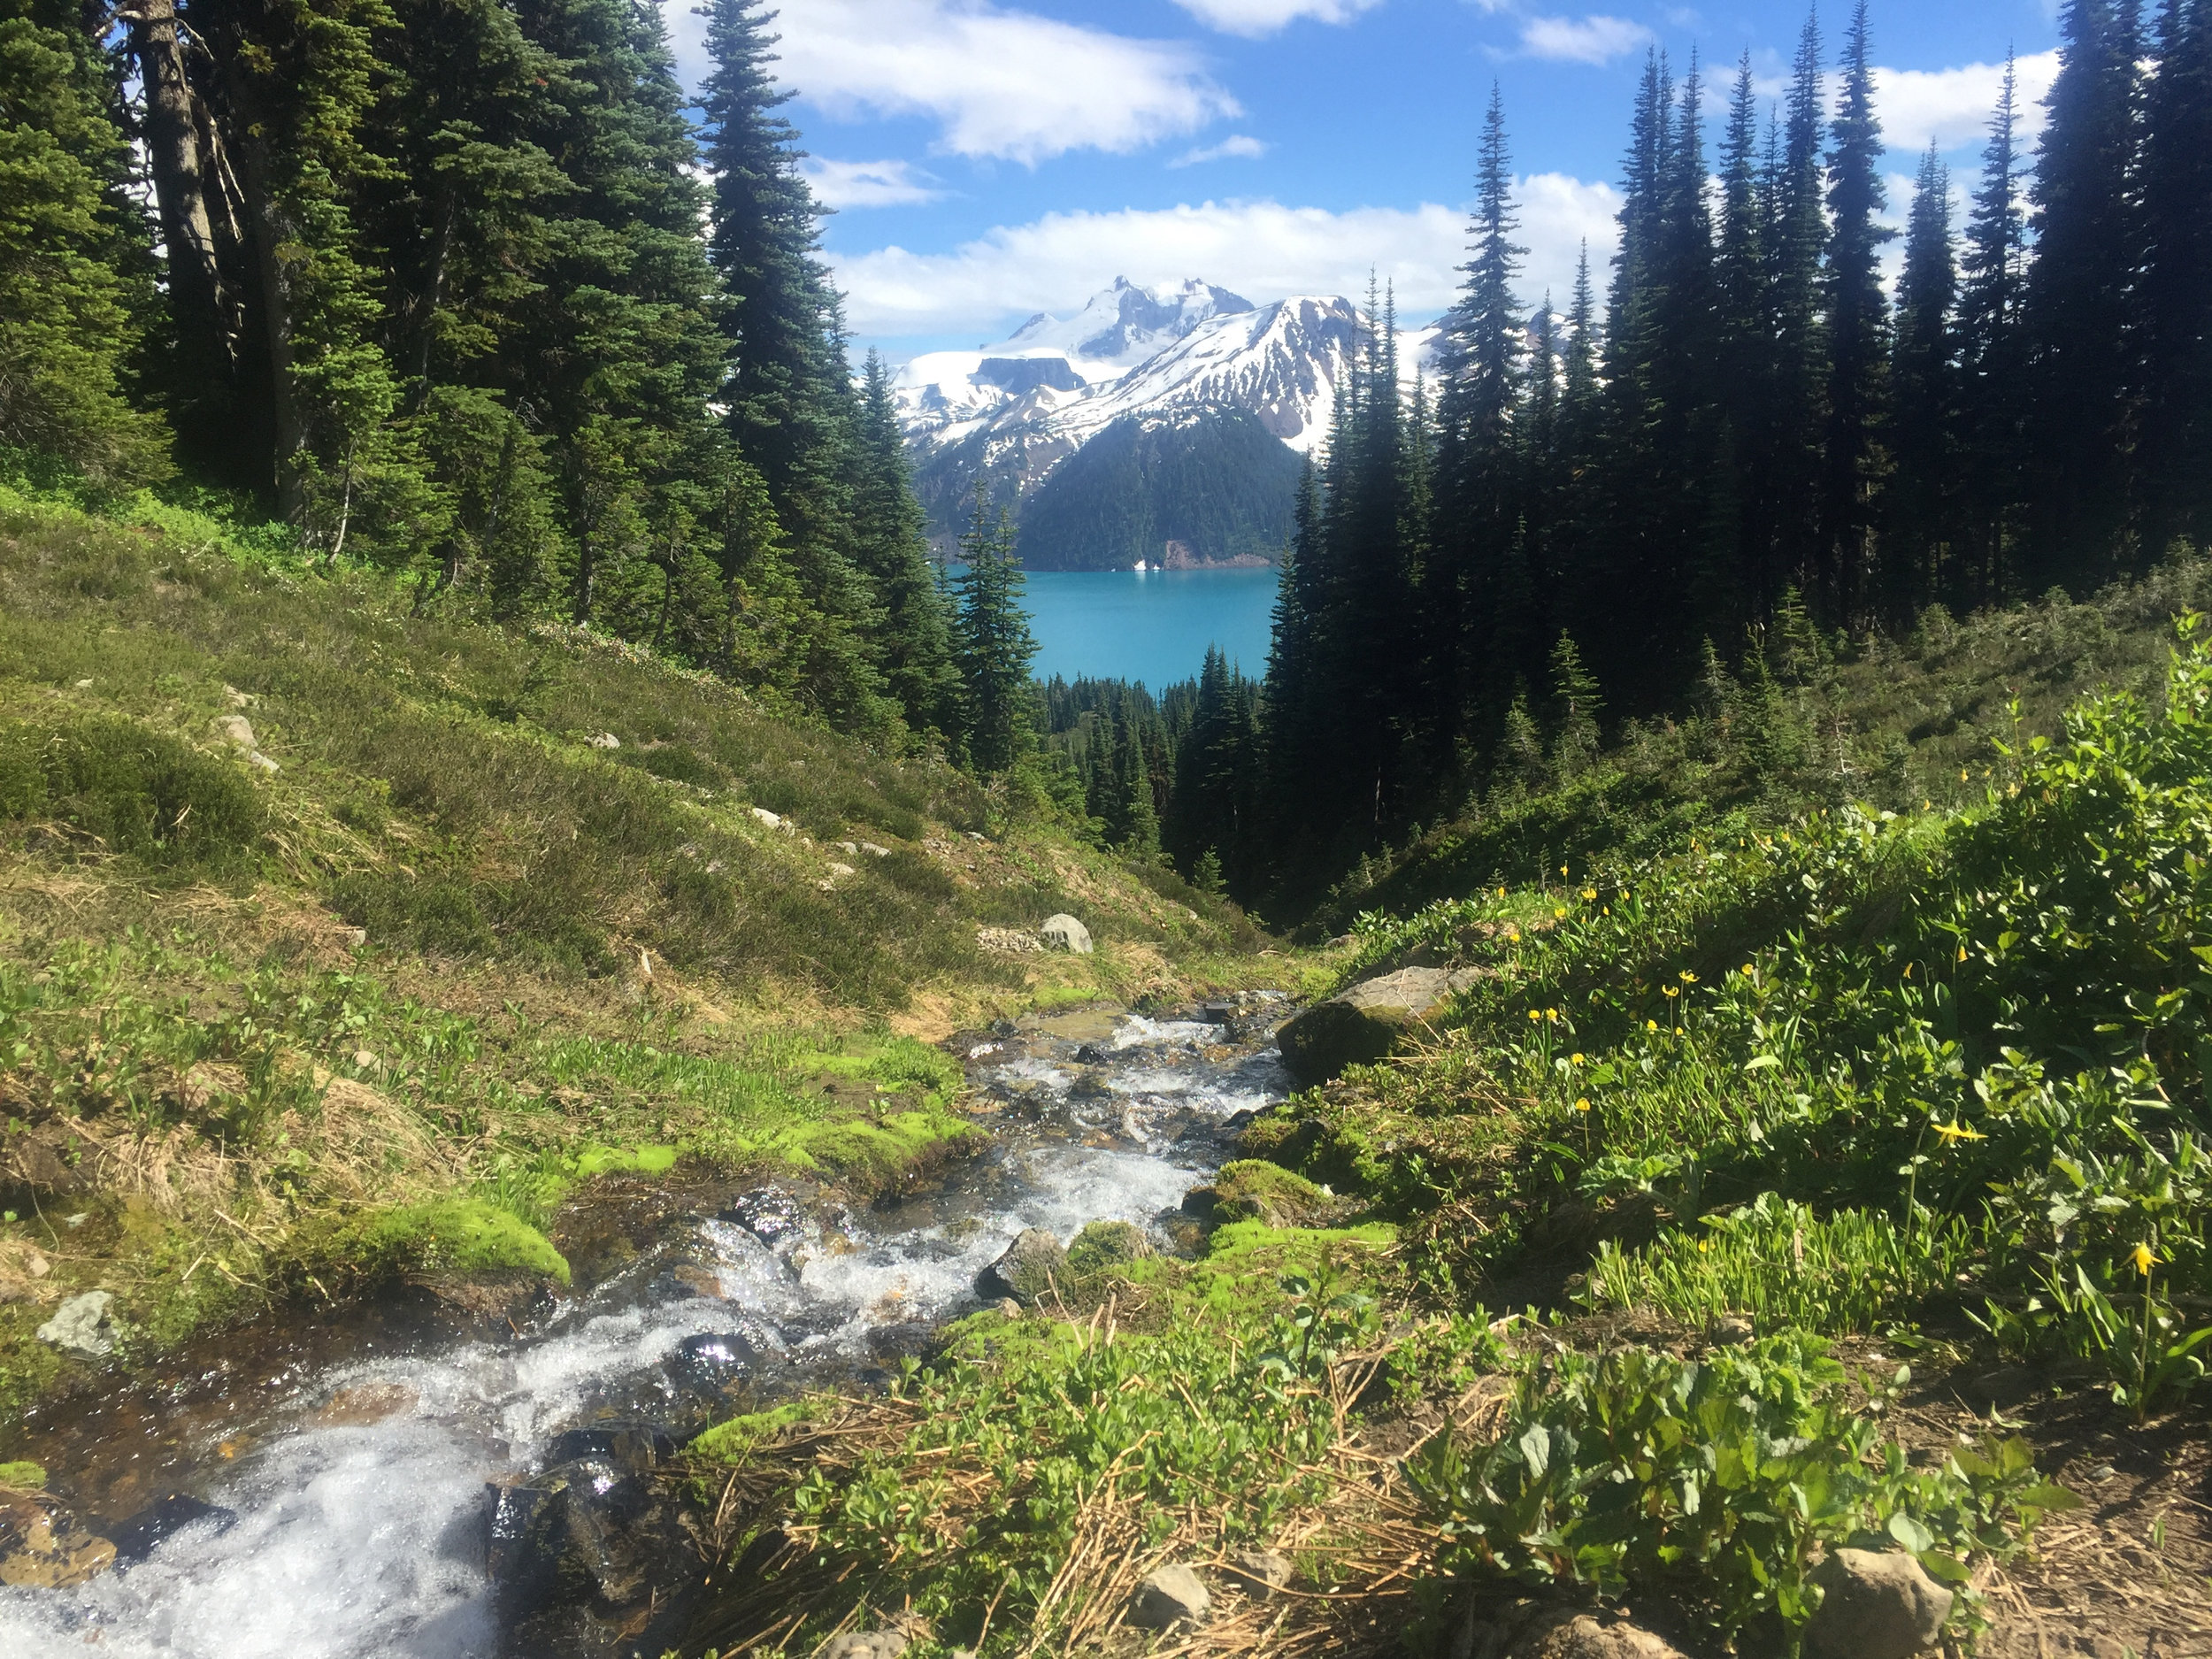 We drank fresh, cold water from the stream. At 11.5km into the hike on a hot day, it was very welcome. That's Garibaldi Lake in the background.